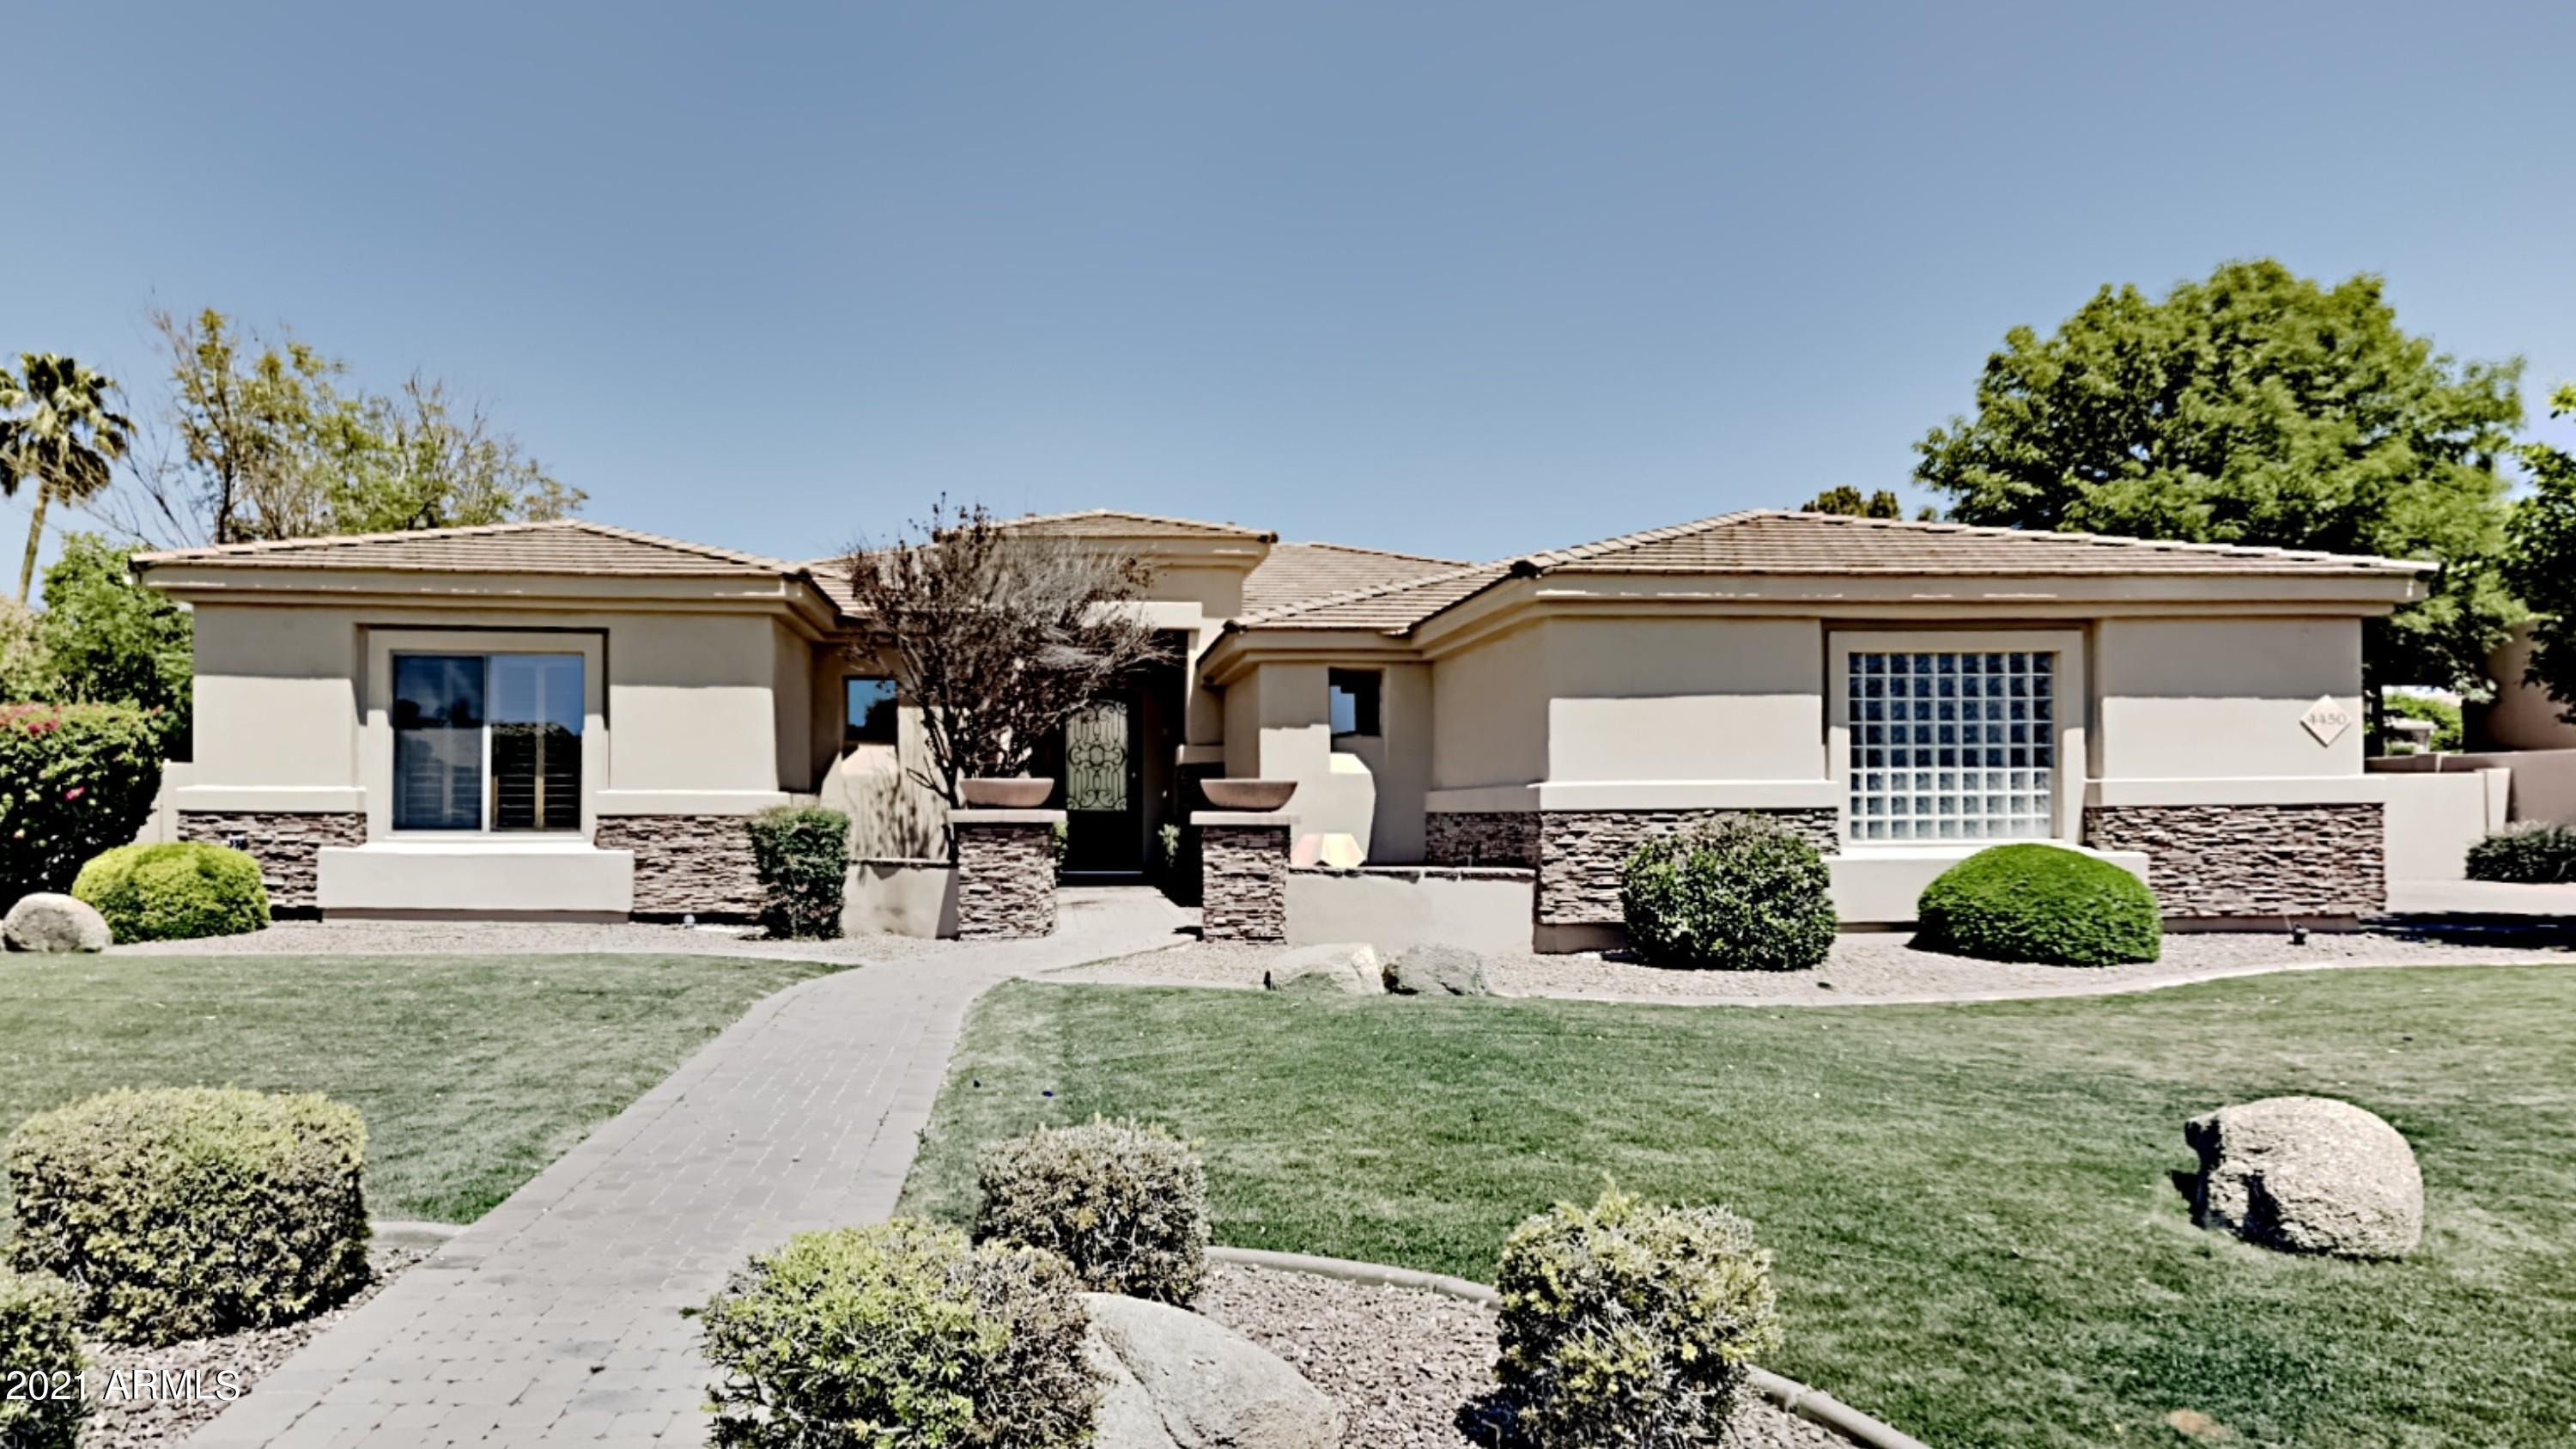 4450 FORD Avenue, Gilbert, Arizona 85234, 5 Bedrooms Bedrooms, ,3.5 BathroomsBathrooms,Residential,For Sale,FORD,6227073